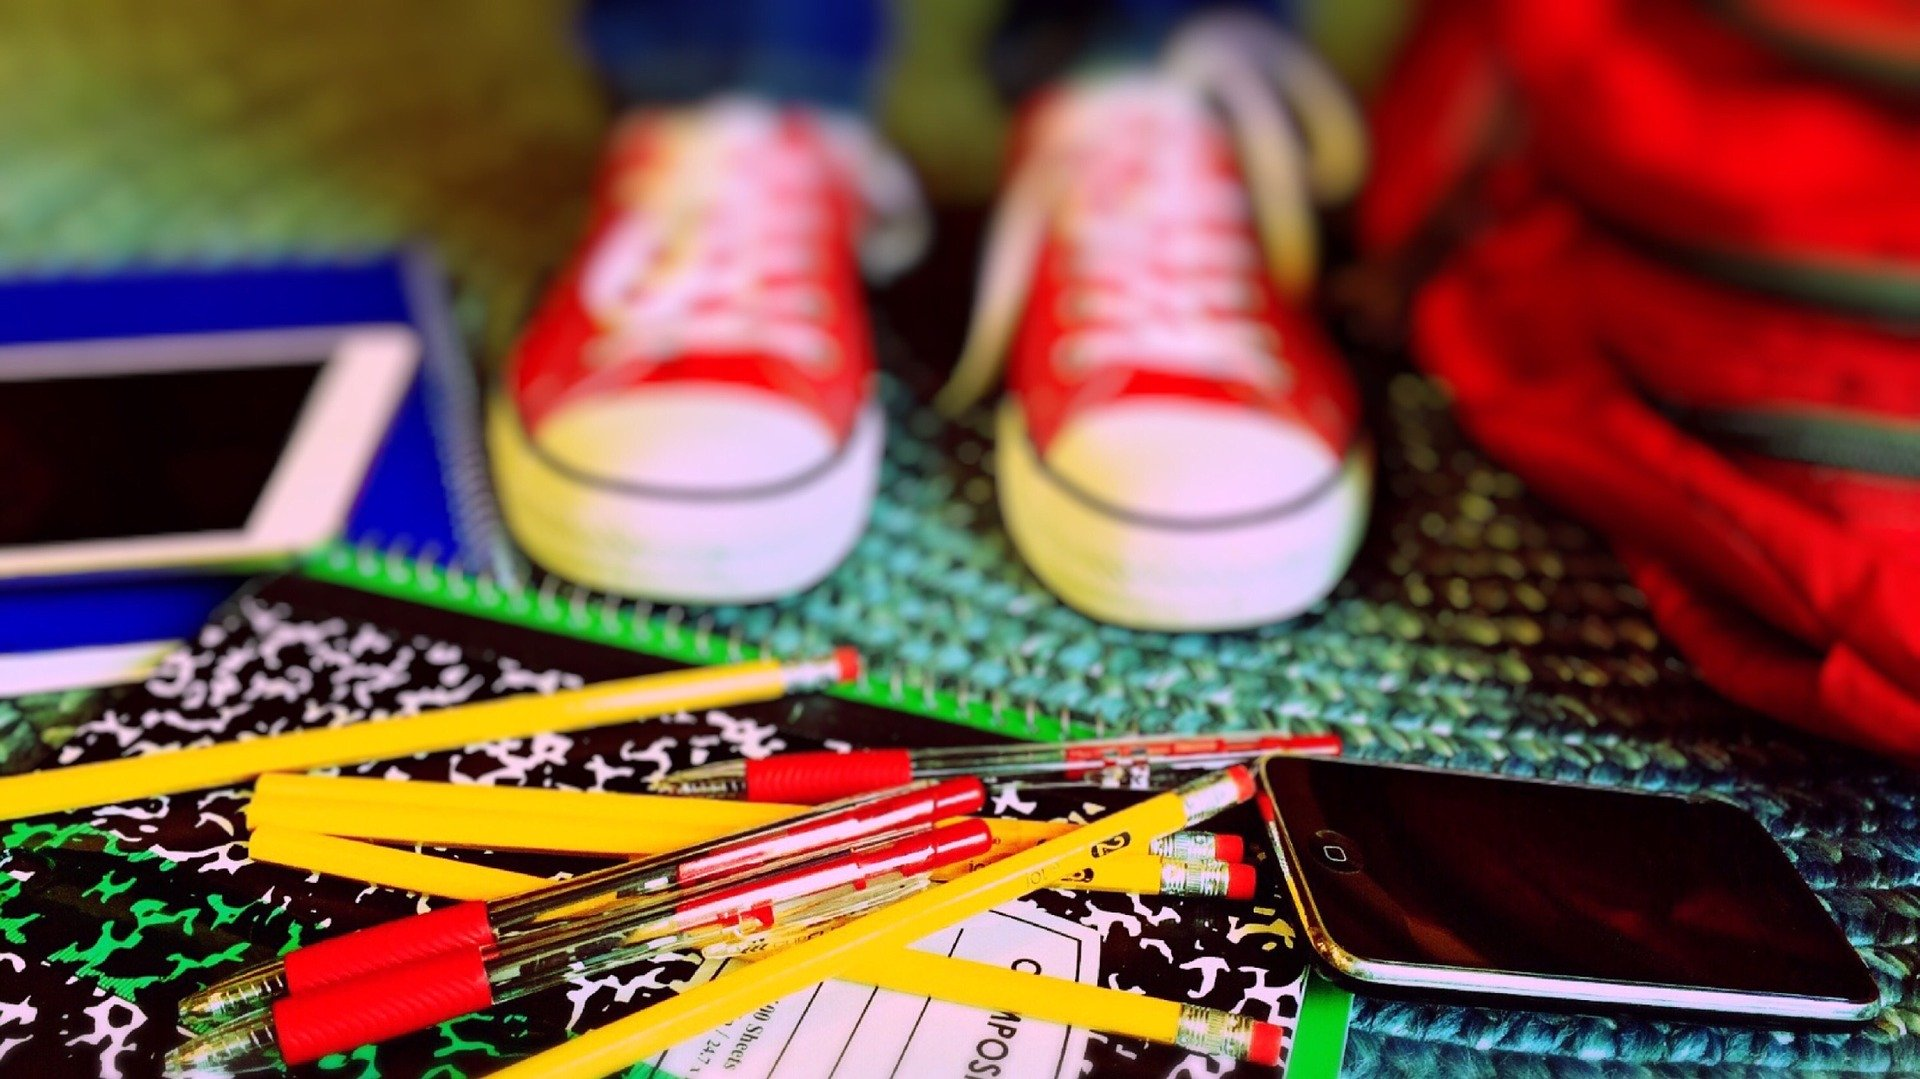 Techniques to help children deal with back to school anxiety